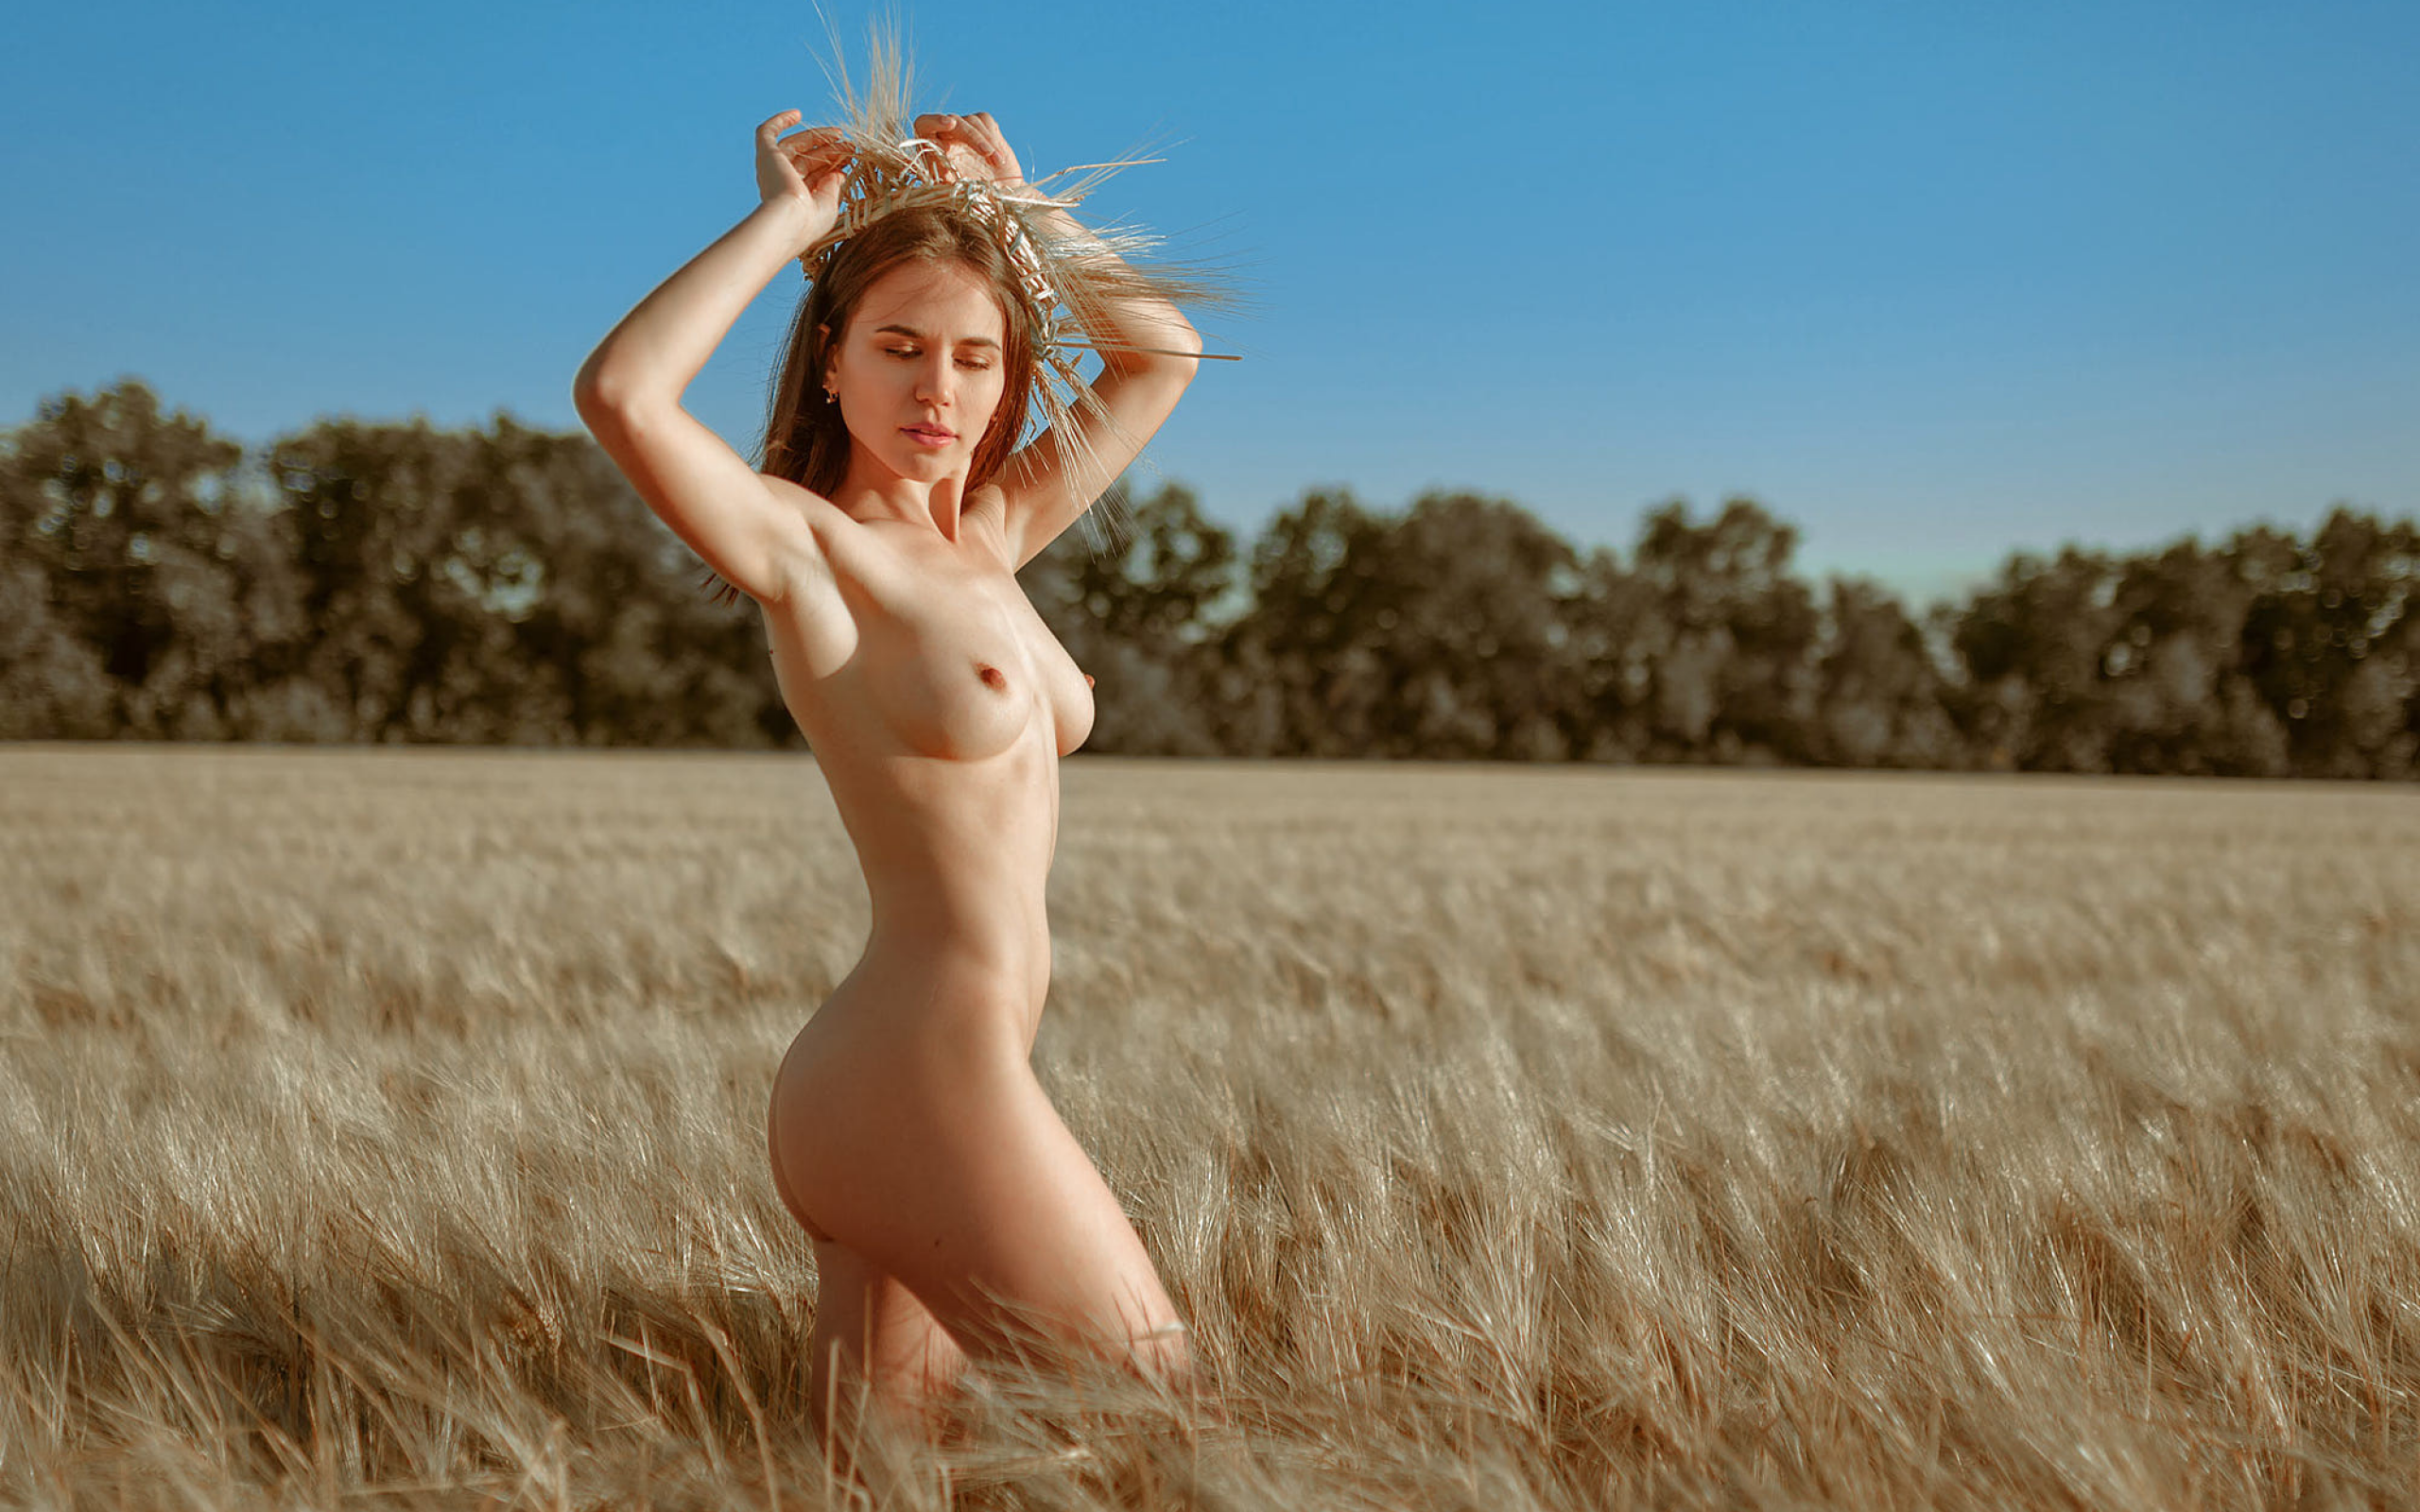 Beautiful Nude Back View Of A Woman A Wheat Field Photograph By Maggie Mccall